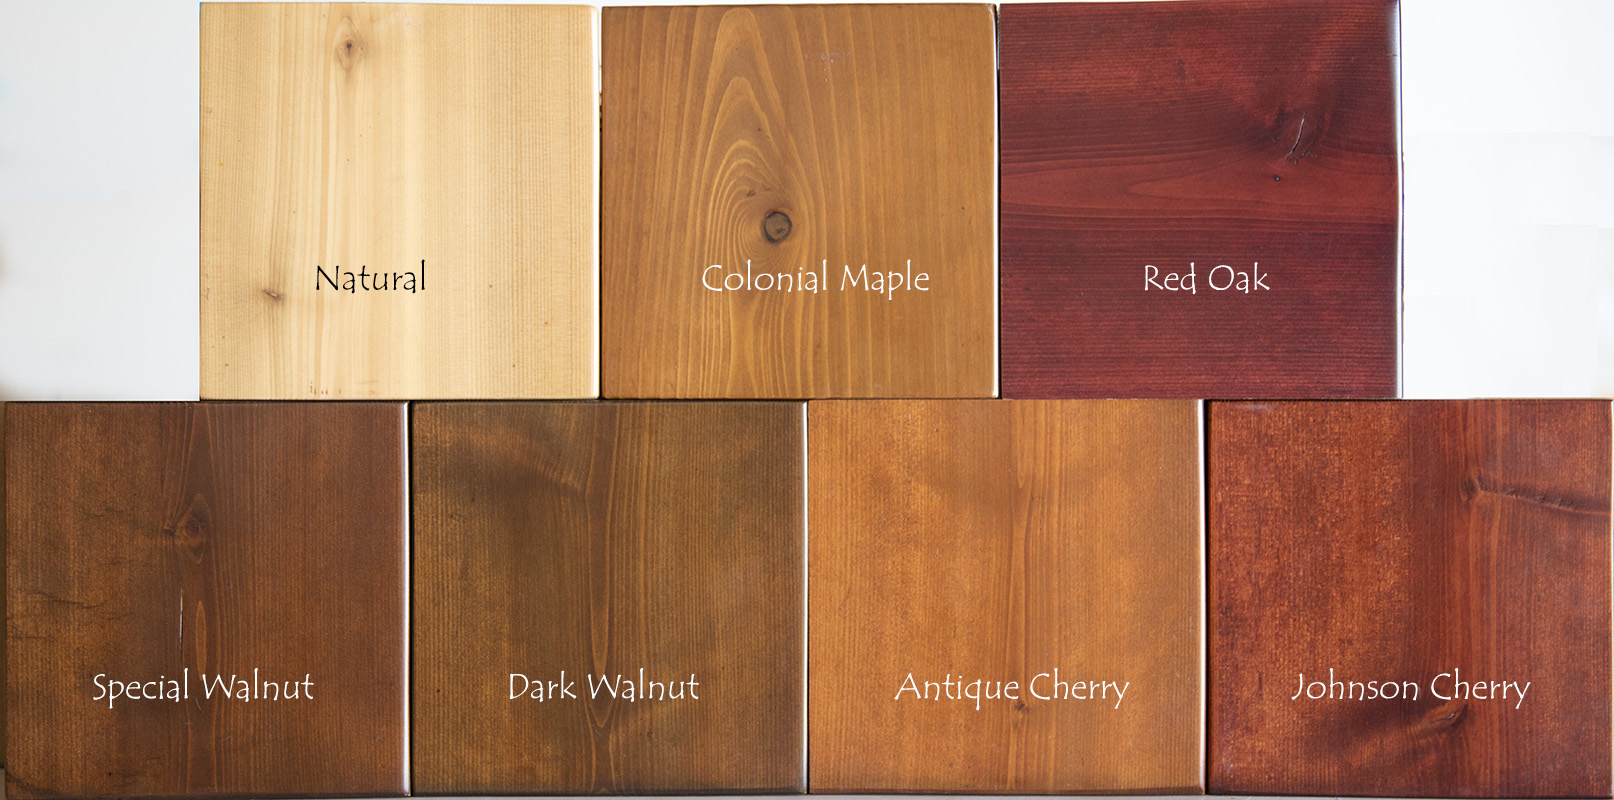 Cedar Garage Door Stain Colors & Wood Door Finishing at Nicks Building Supply pezcame.com